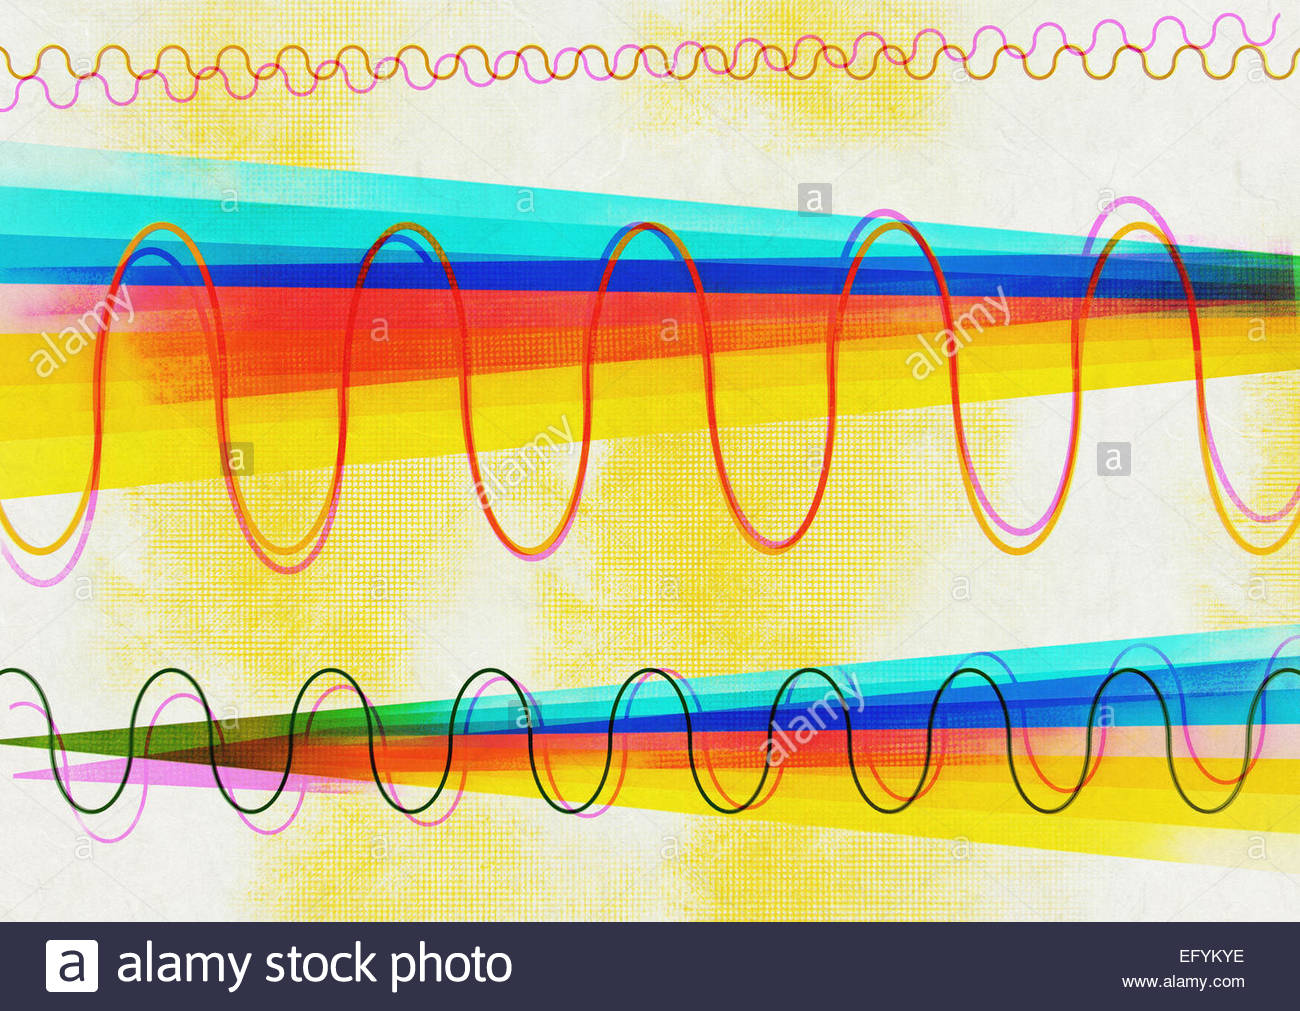 Scientific retro illustration of light spectrum with oscillating waves - Stock Image